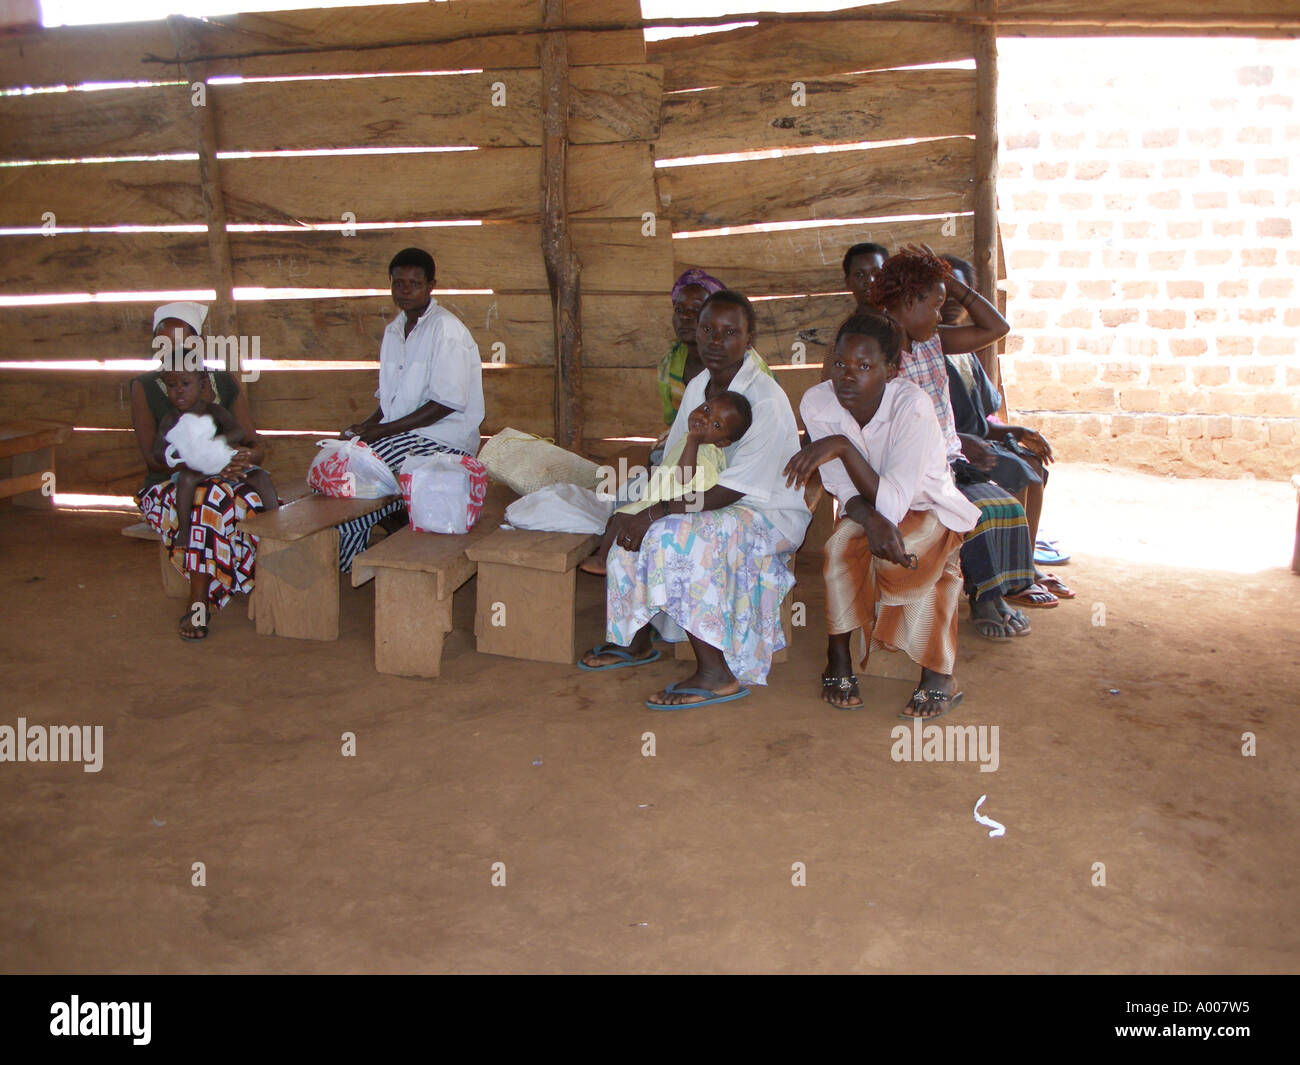 Widows and housewives at a church that helps them with income generating activities - Stock Image